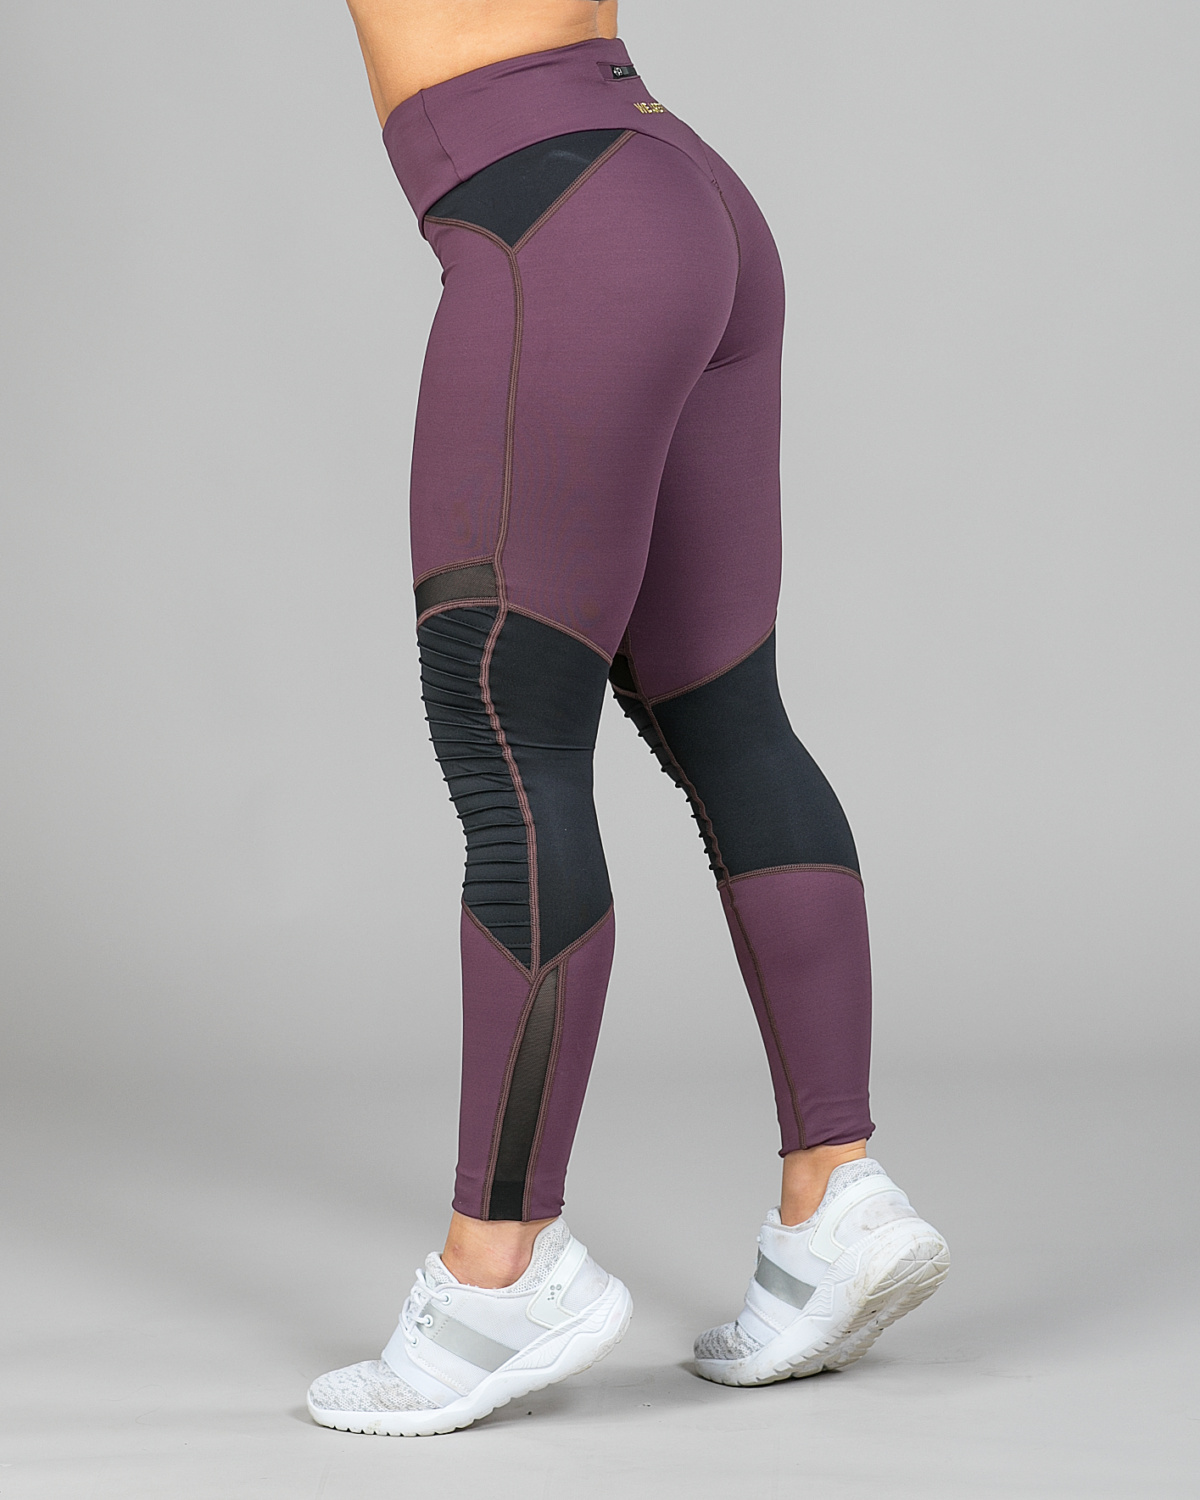 We-Are-Fit-Rebel-Tights